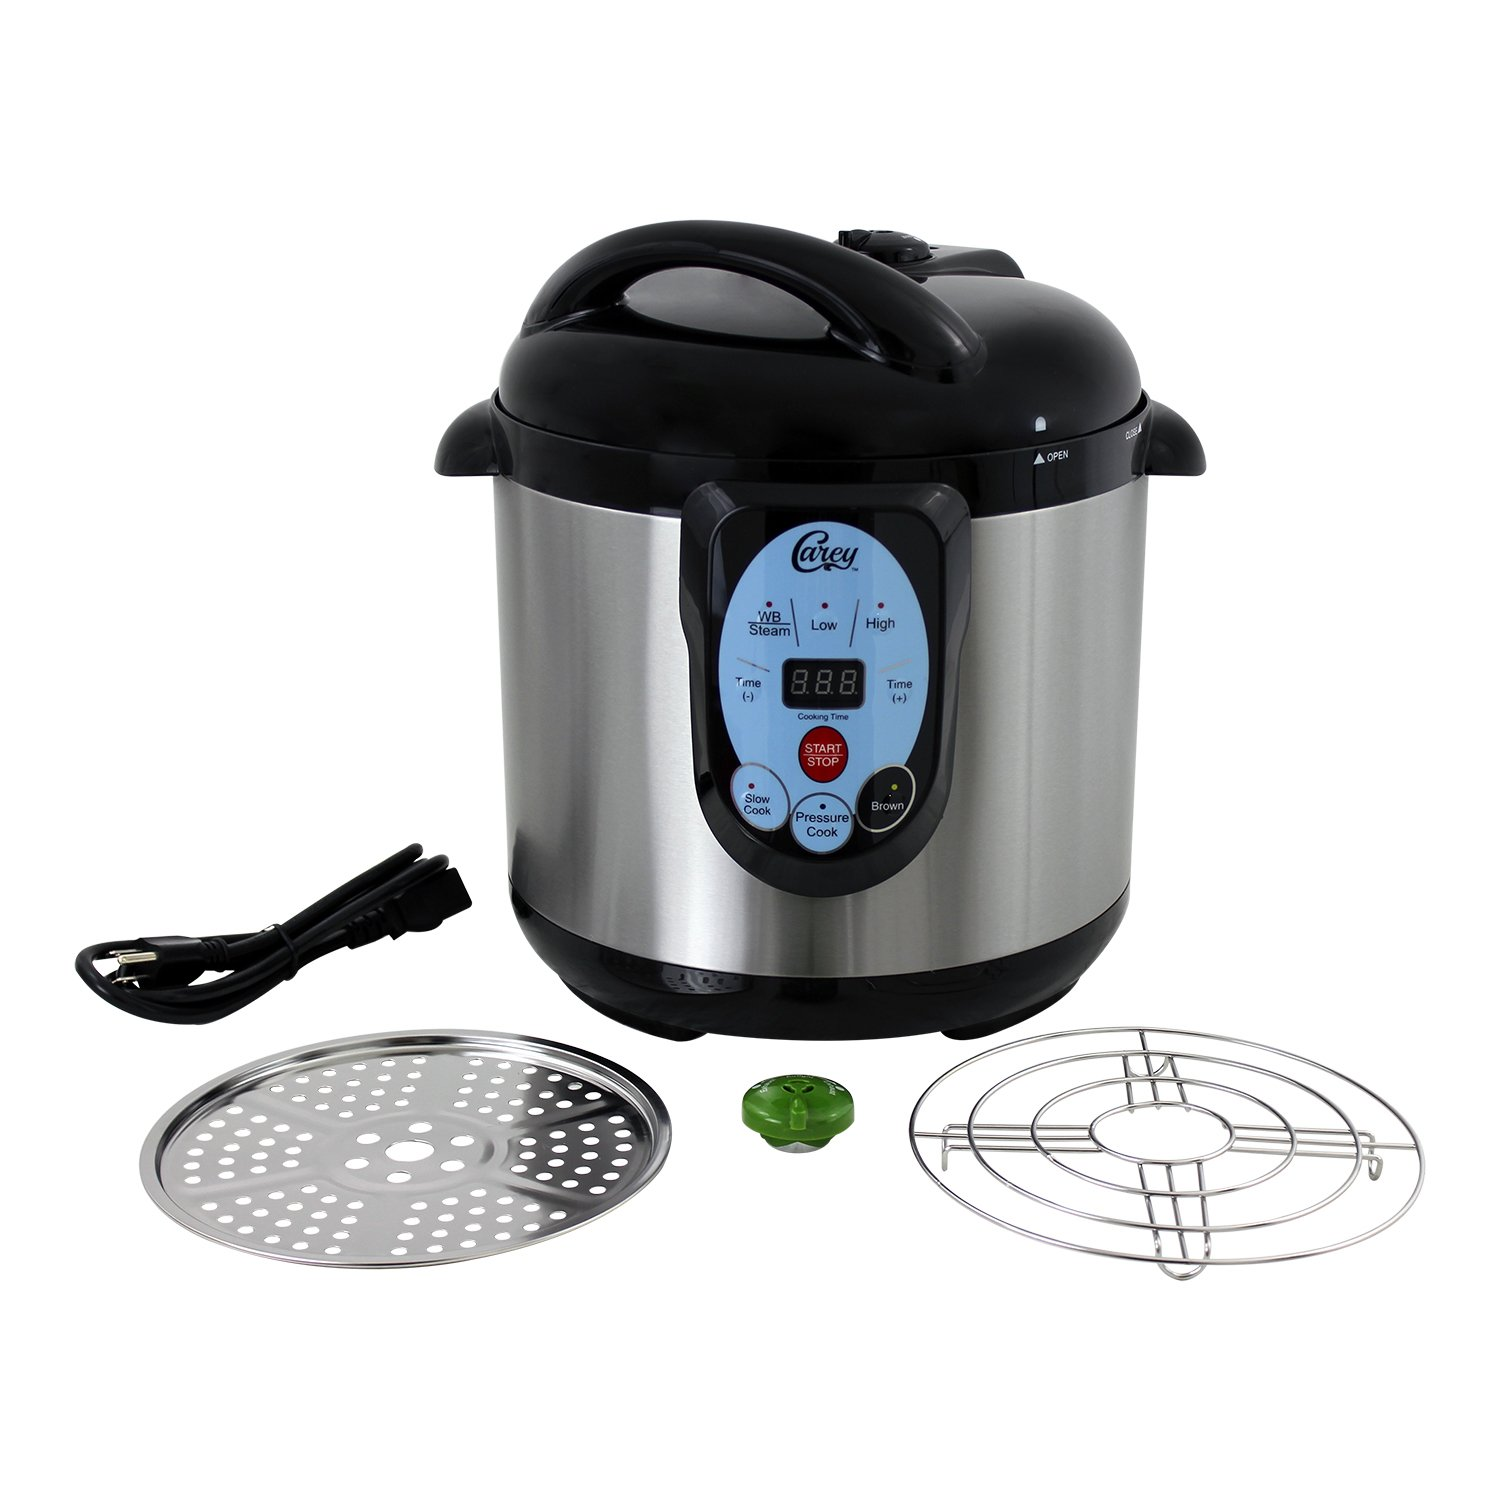 Carey DPC-9SS, Smart Pressure Canner & Cooker, Stainless Steel, 9.5 Quart by Nesco